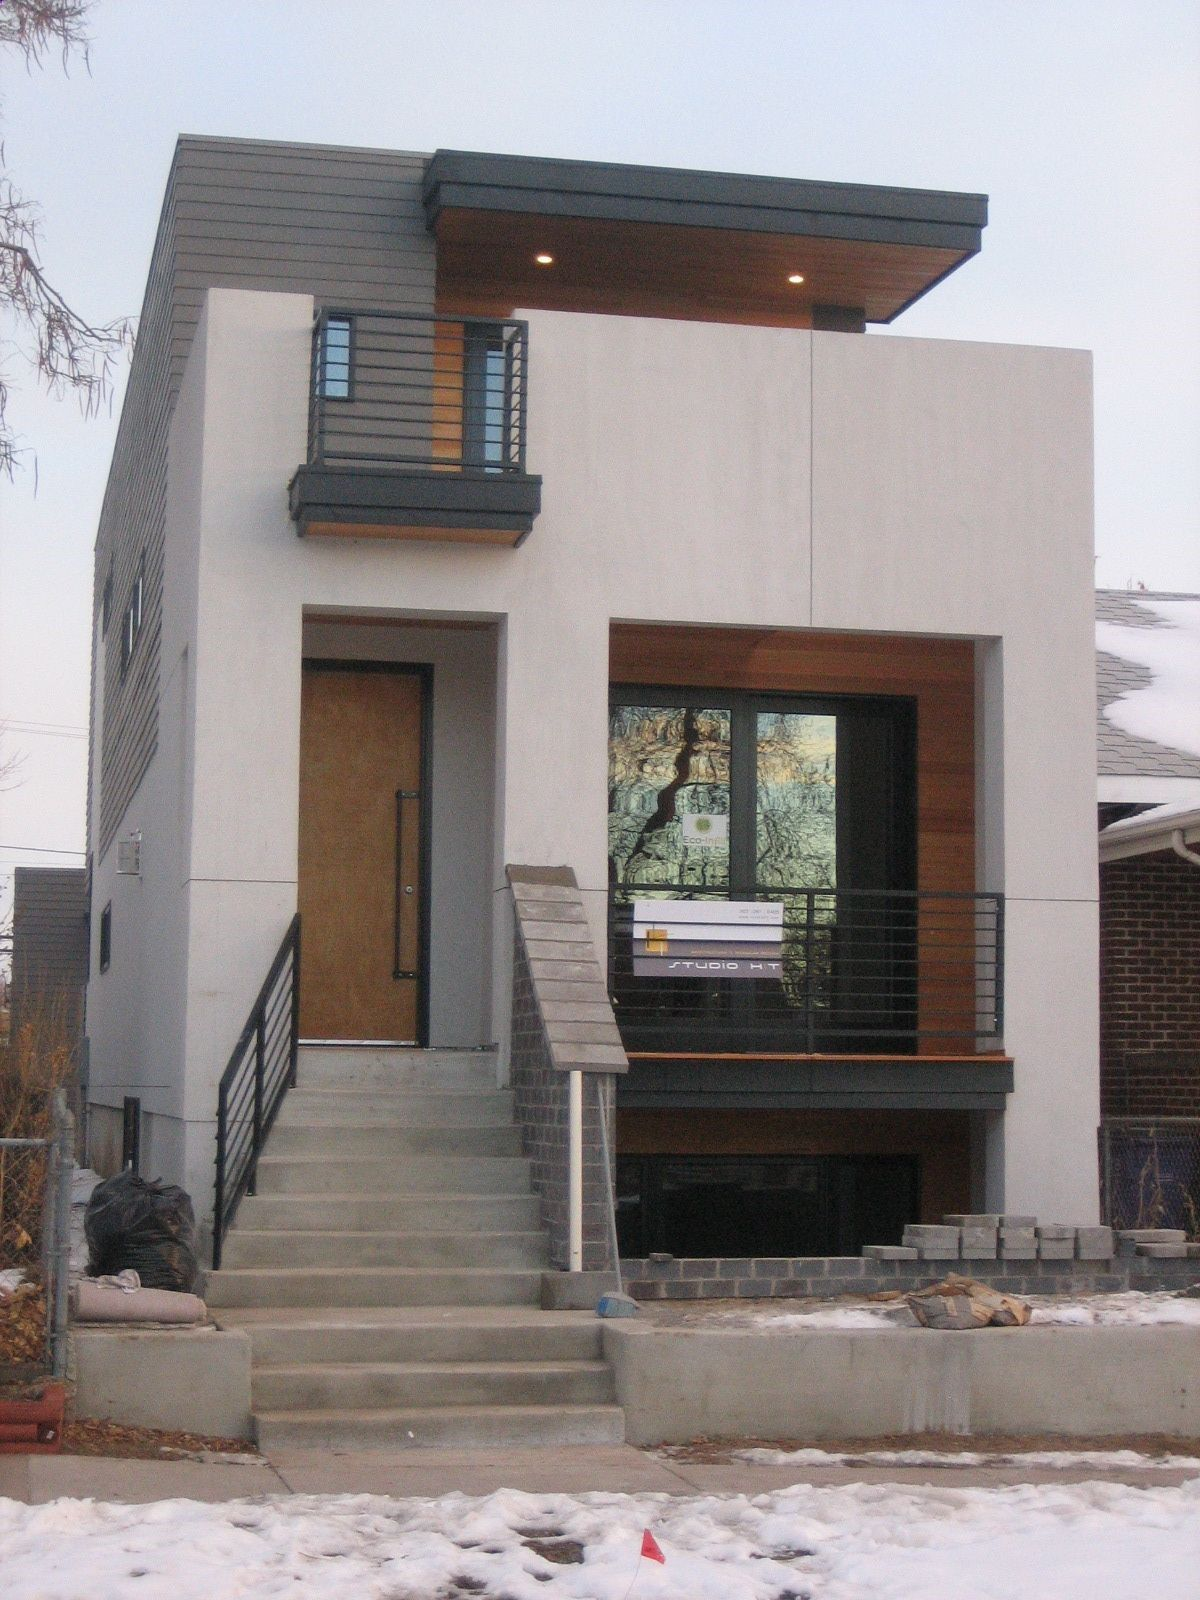 Small Modern House Design With White Walol Using Large Window And Wooden Brown Color That Have Small House Exteriors Small Modern Home Minimalist House Design